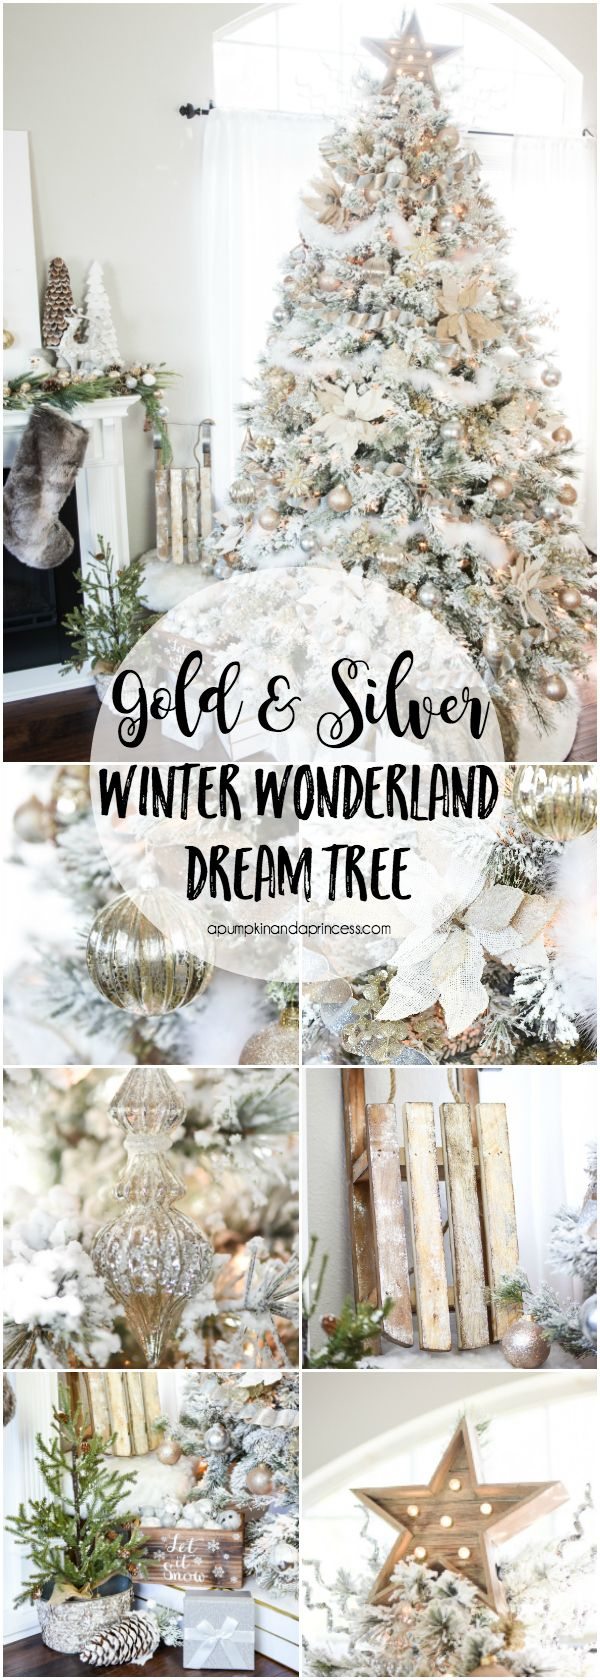 Christmas tree decorations silver - How To Decorate A Flocked Gold And Silver Winter Wonderland Christmas Tree Michaels Dream Tree